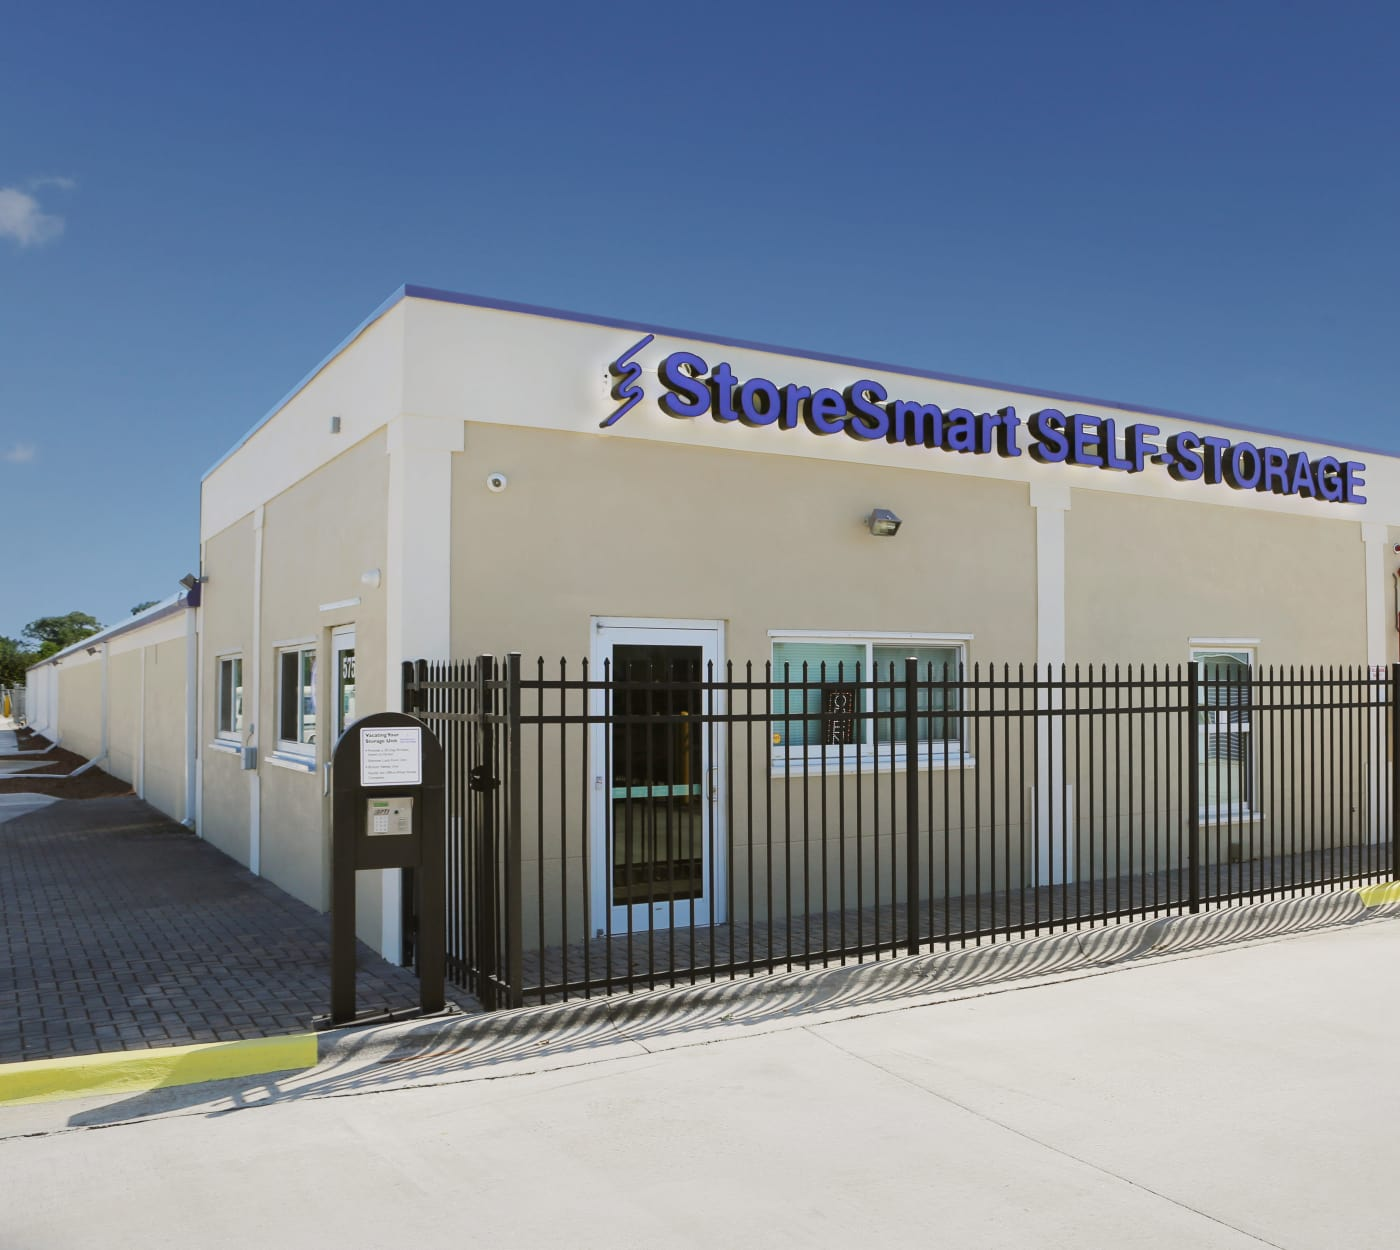 Entrance gate at StoreSmart Self-Storage in Melbourne, Florida